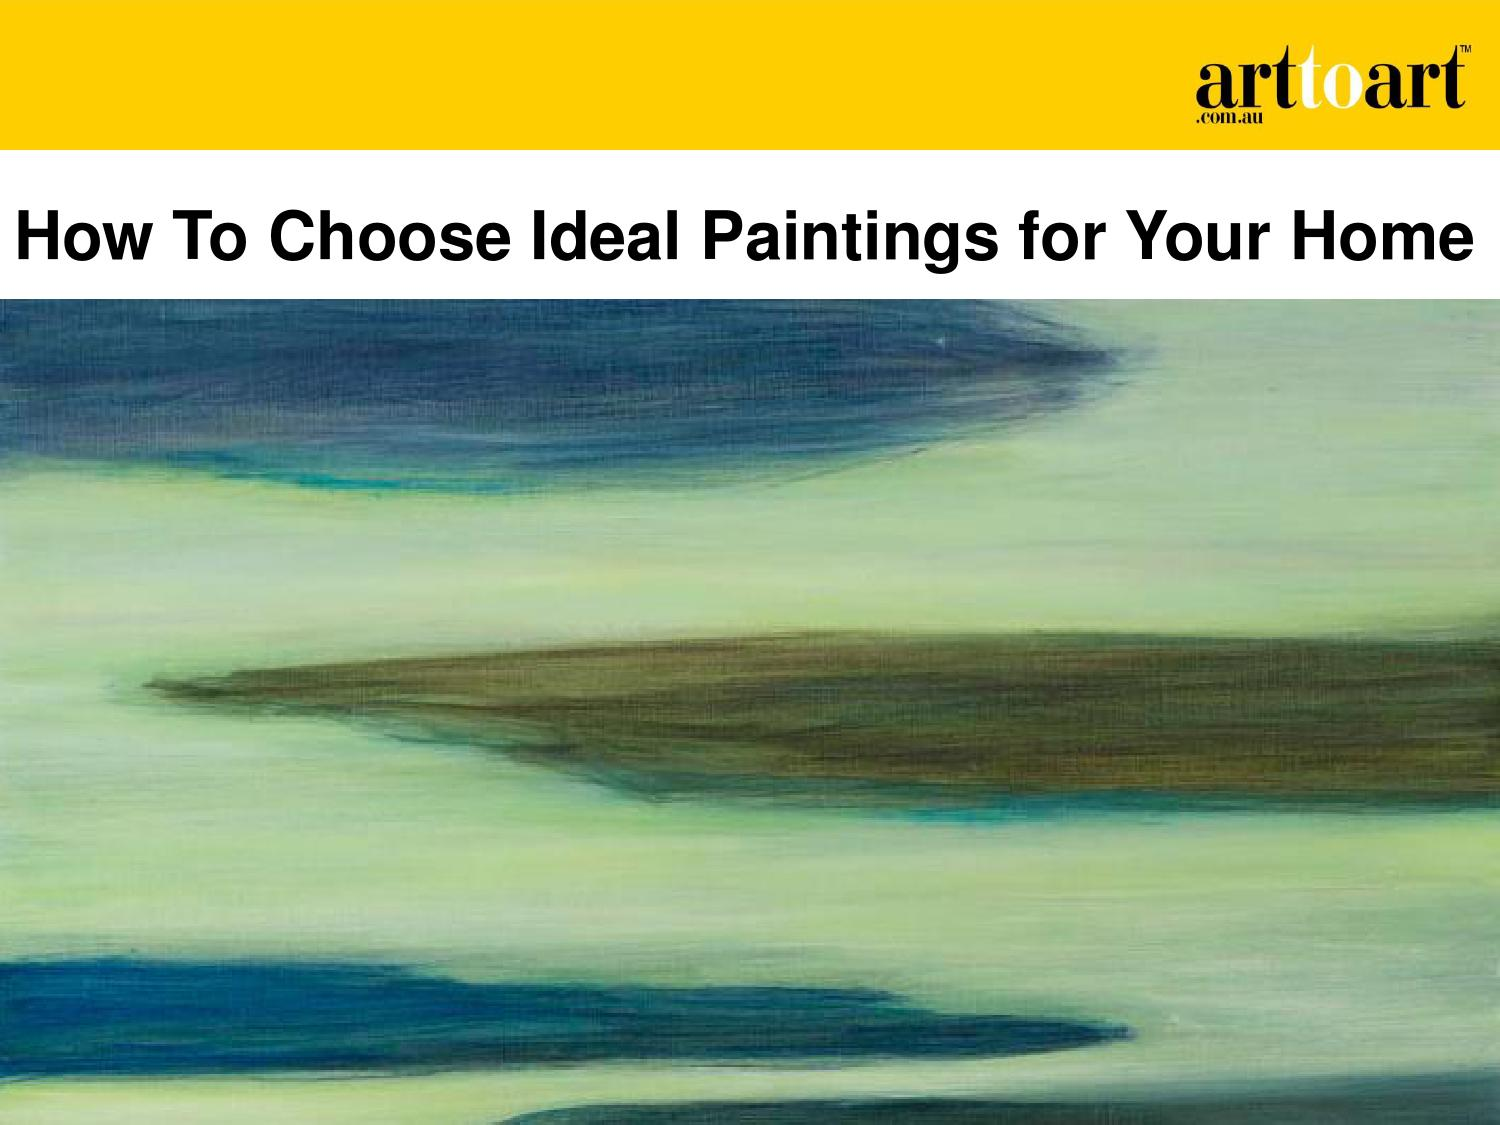 How To Choose Ideal Paintings For Your Home By. Abdominal Fat Reduction Folding Guard Company. Home Insurance For Unoccupied Property. How To Lighten Underarm Skin. Tri Cities Insurance Professionals. What Is The Refinance Rate Today. Information Security Course Davis Bail Bonds. How Do You Set Up A Website Banff Mt Norquay. Formatted Hdd Data Recovery Email To Fax Mac